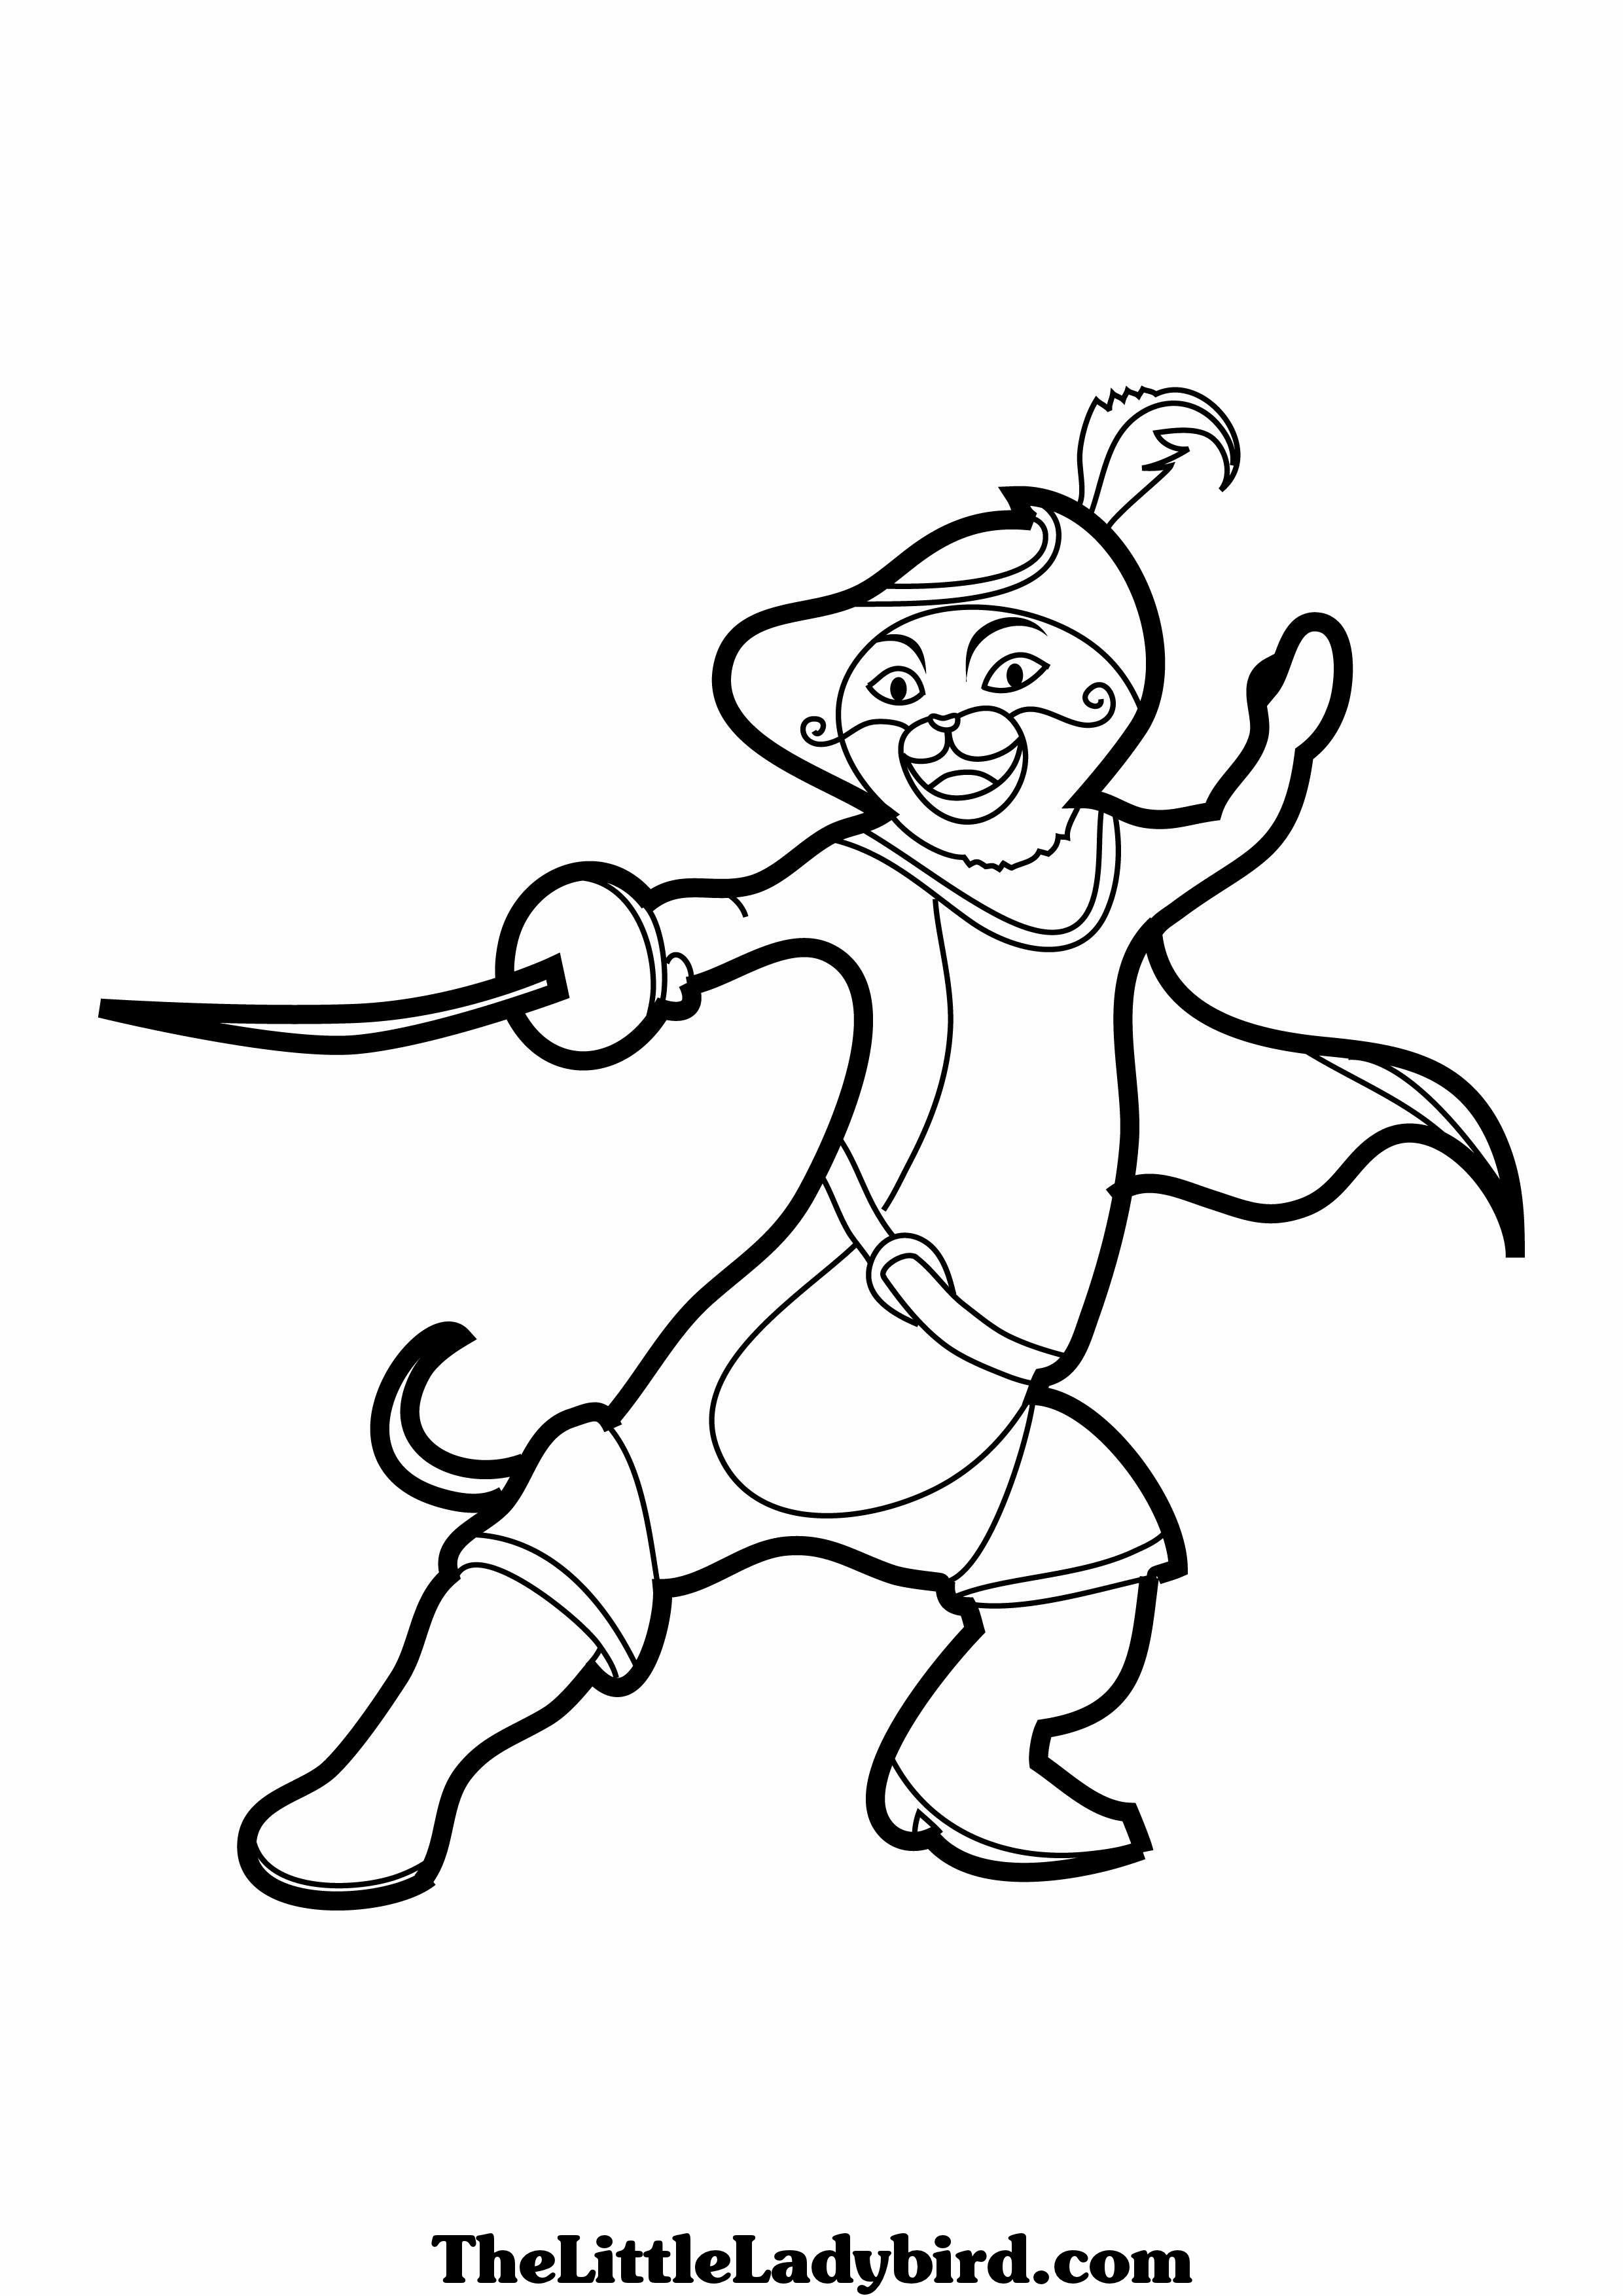 puss in boots coloring pages - Google Search | Birthday Parties ...